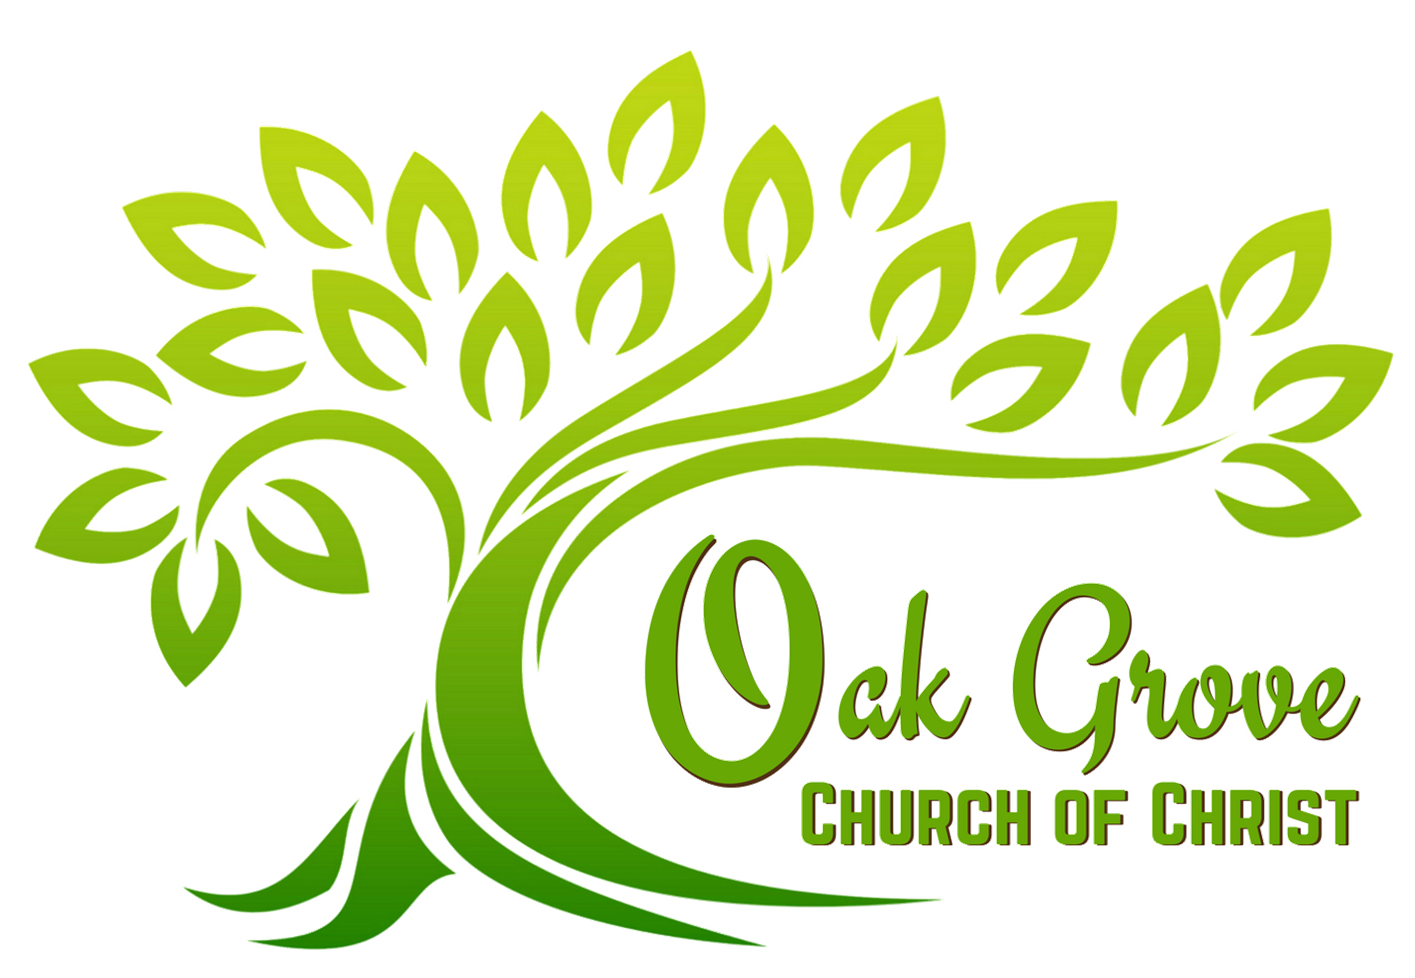 Oak Grove Church of Christ